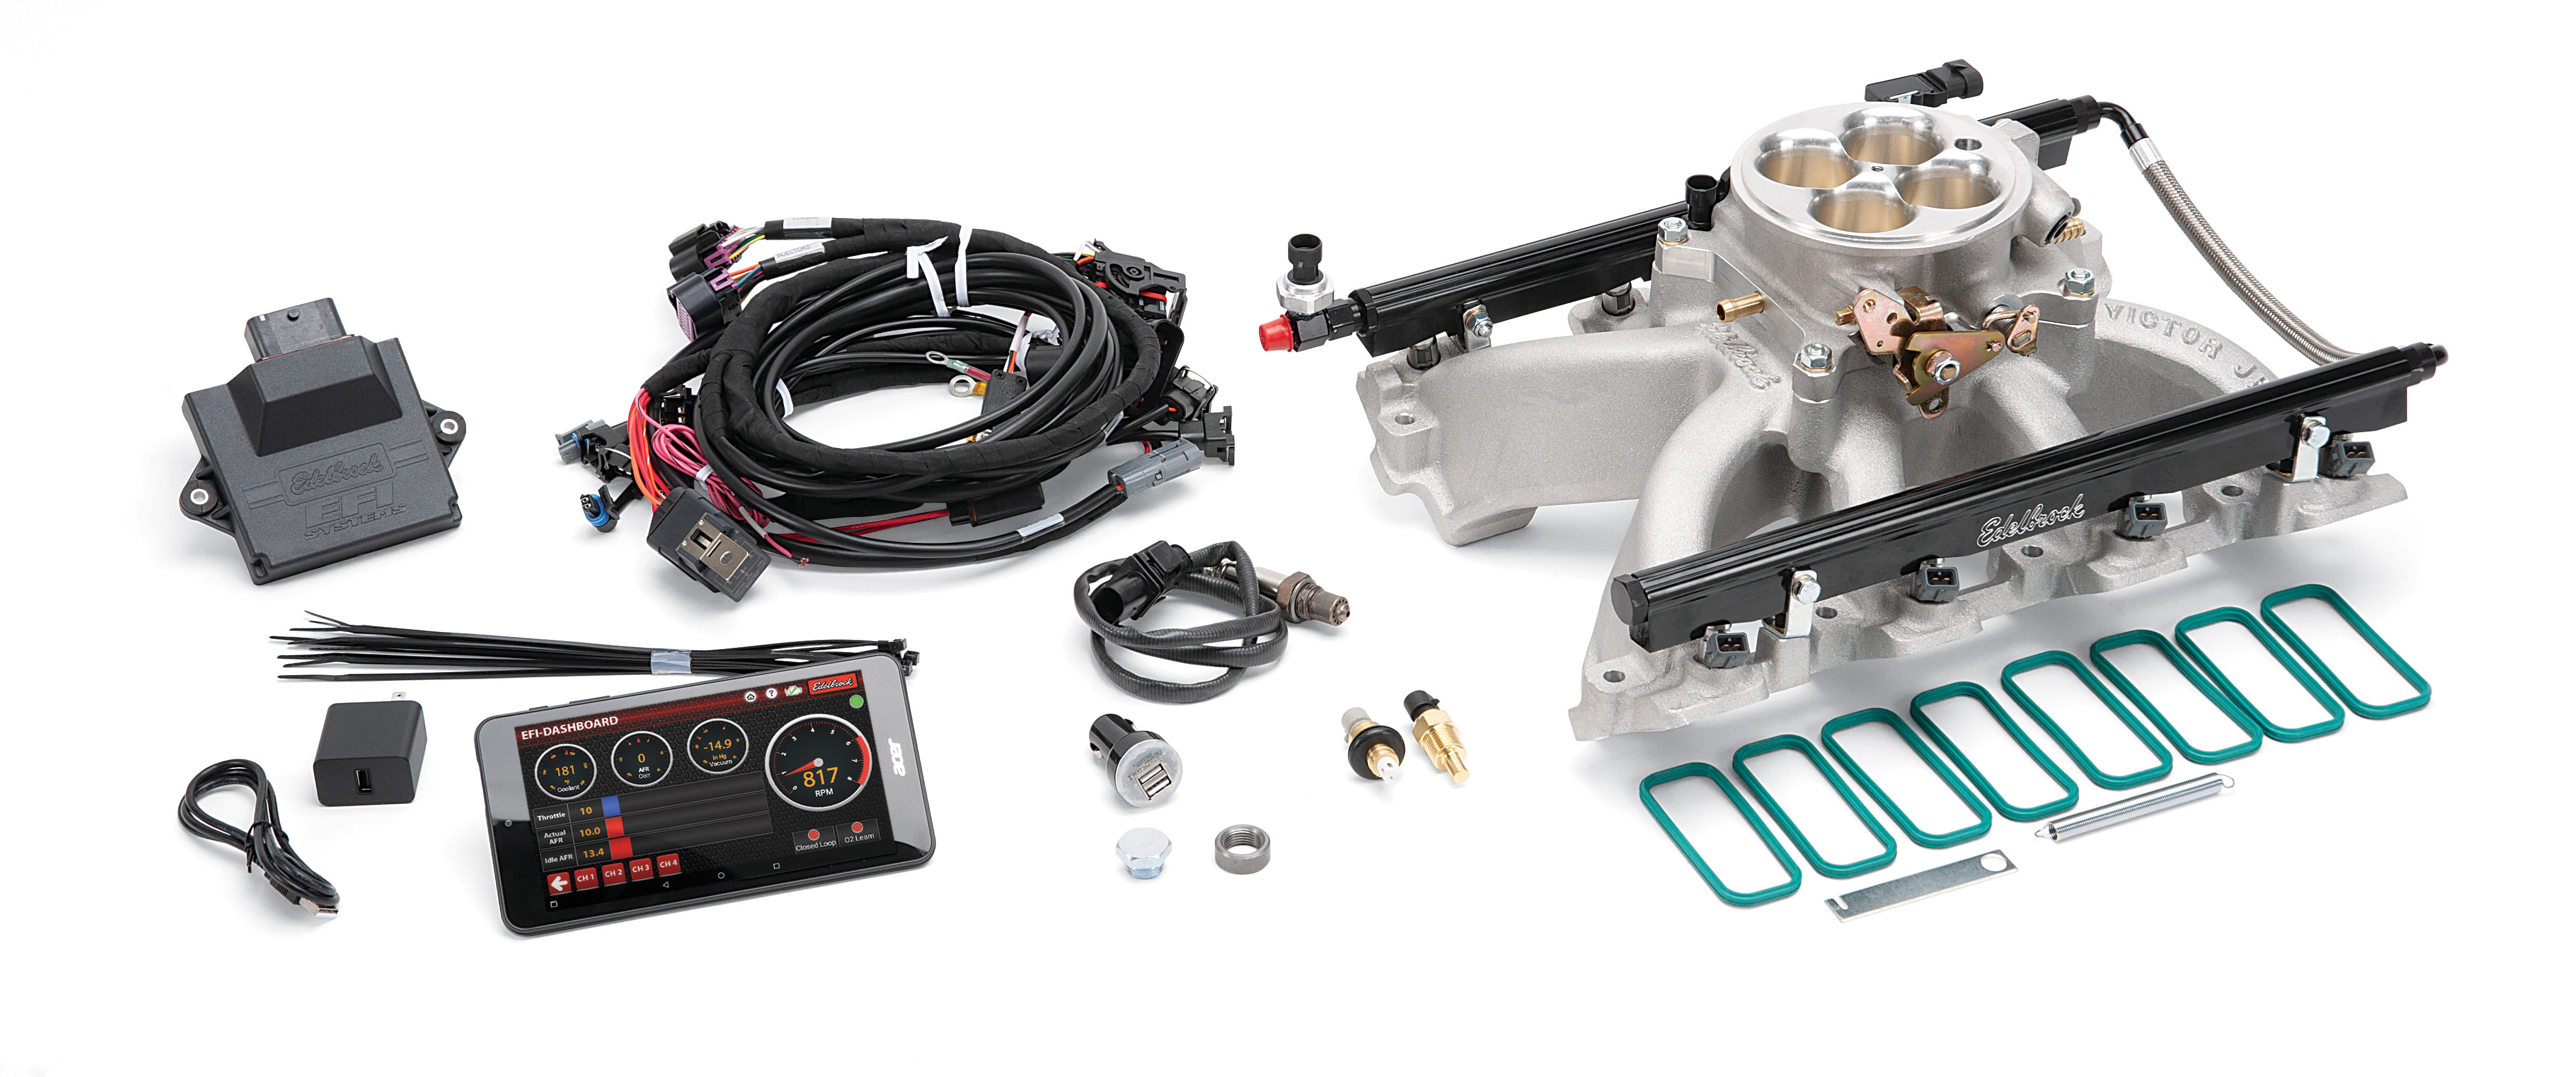 Edelbrock now offers nearly 100 parts for General Motors' LS